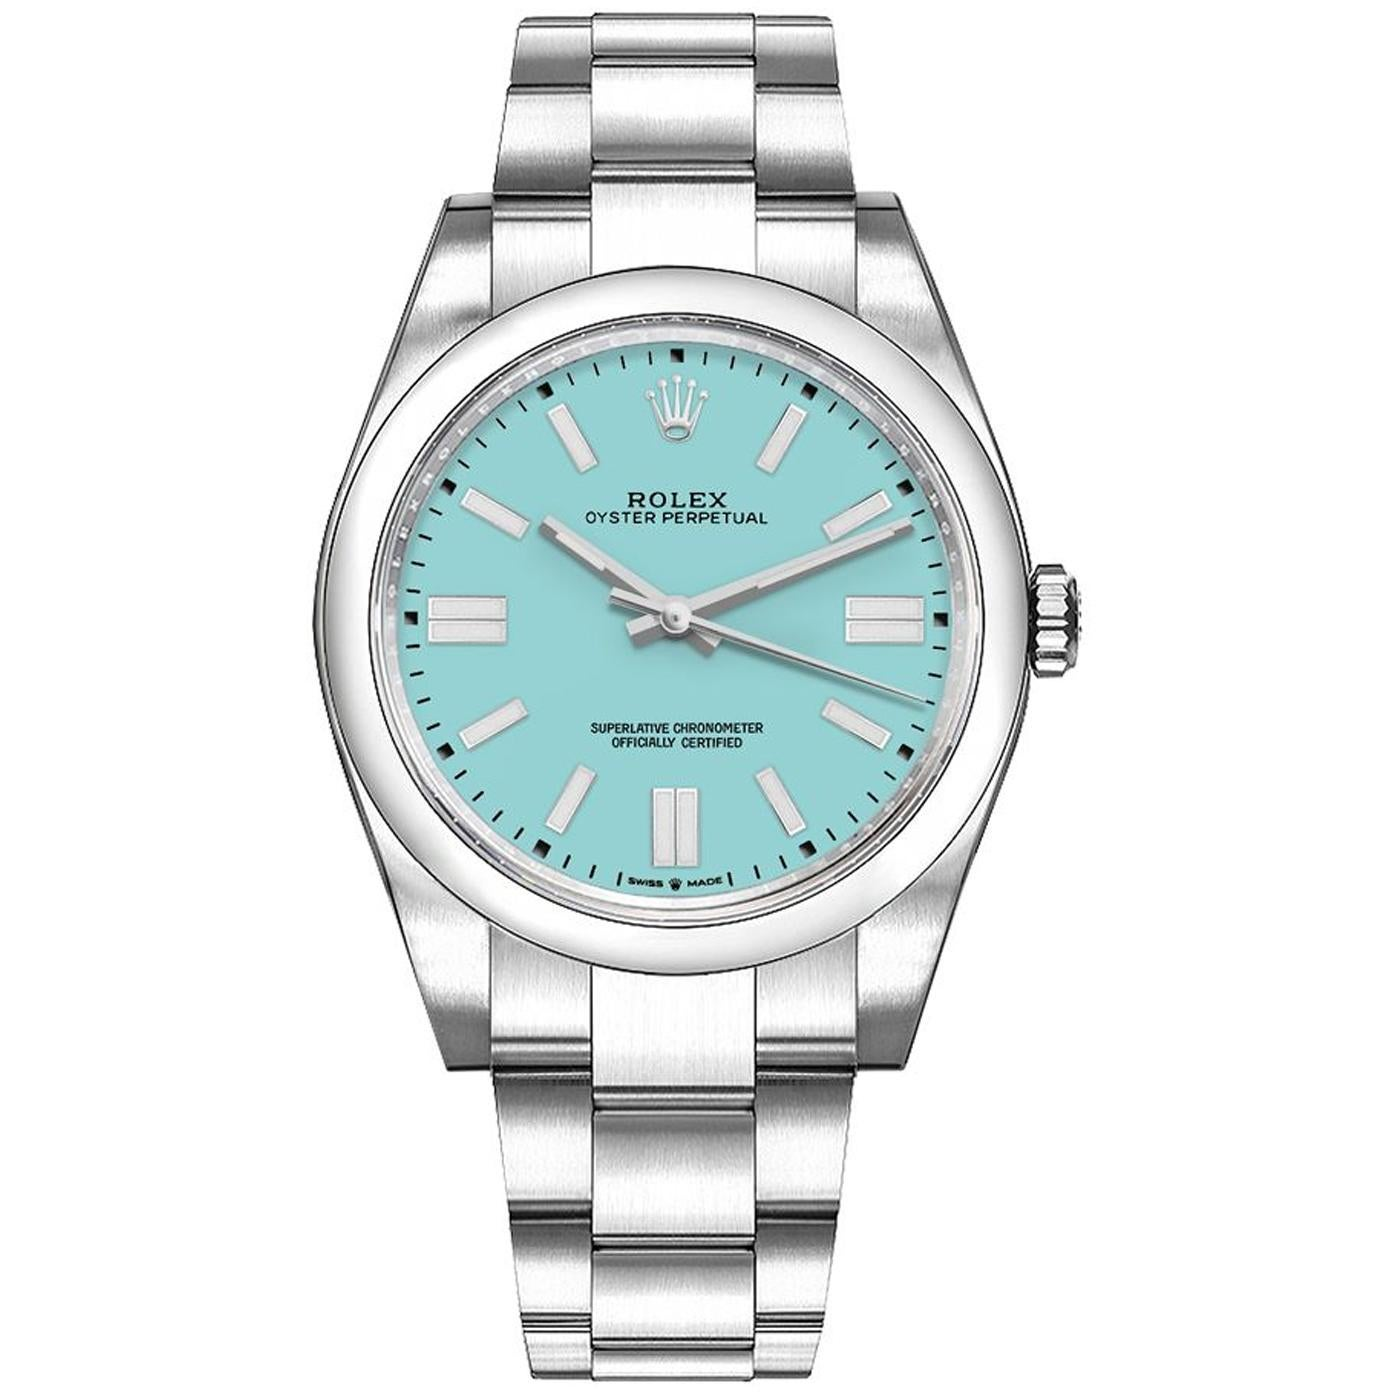 Rolex Oyster Perpetual Turquoise Blue Dial Stainless Steel Watch 124300